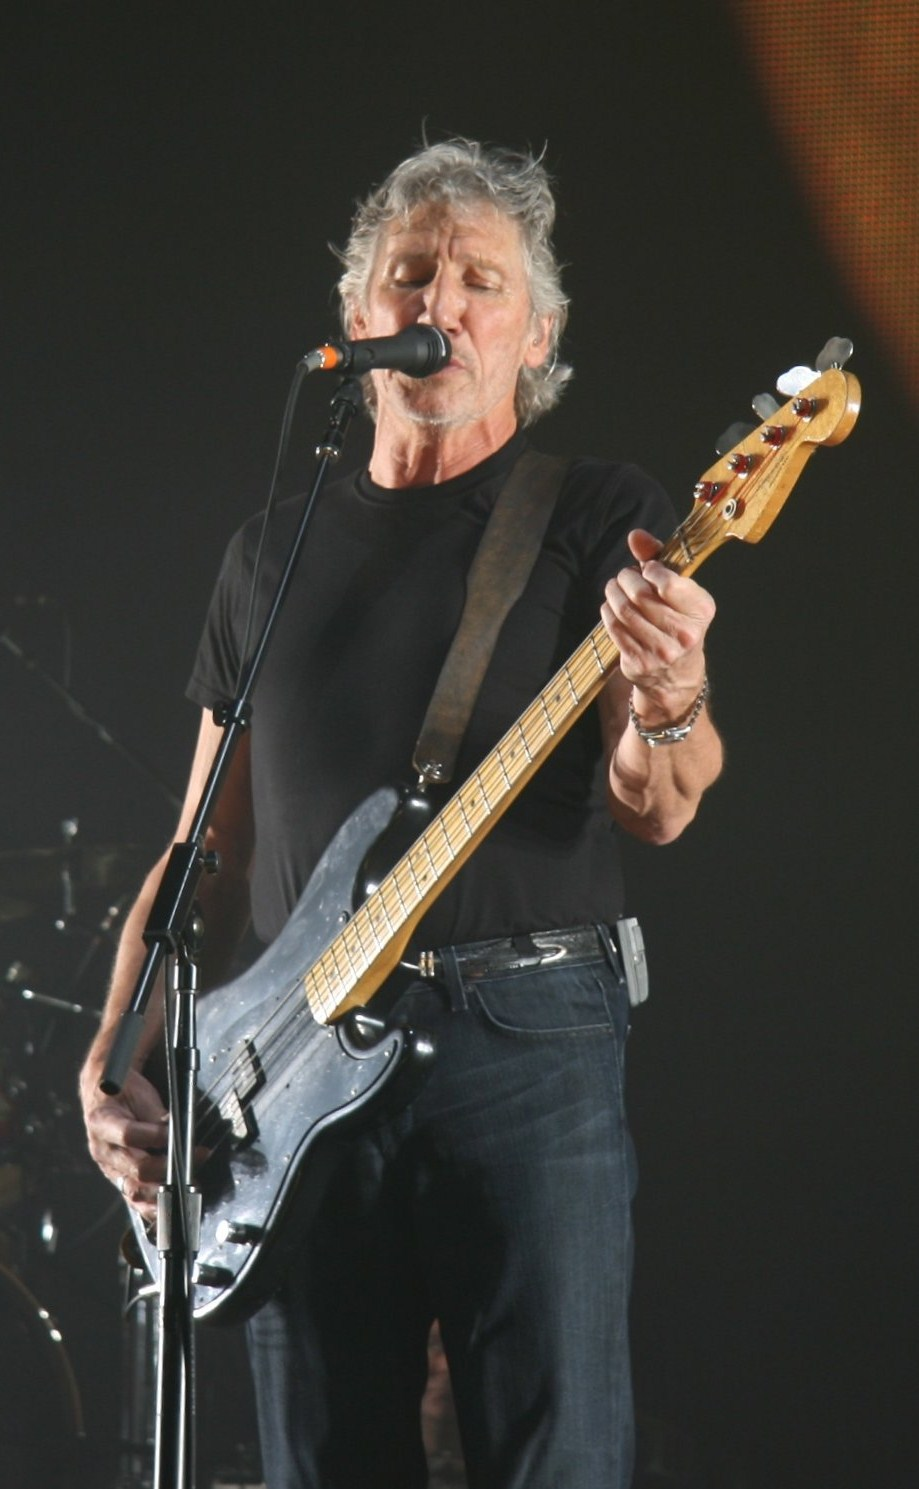 Pink Floyd member Roger Waters. Credit: Eddie Berman via Wikimedia Commons.